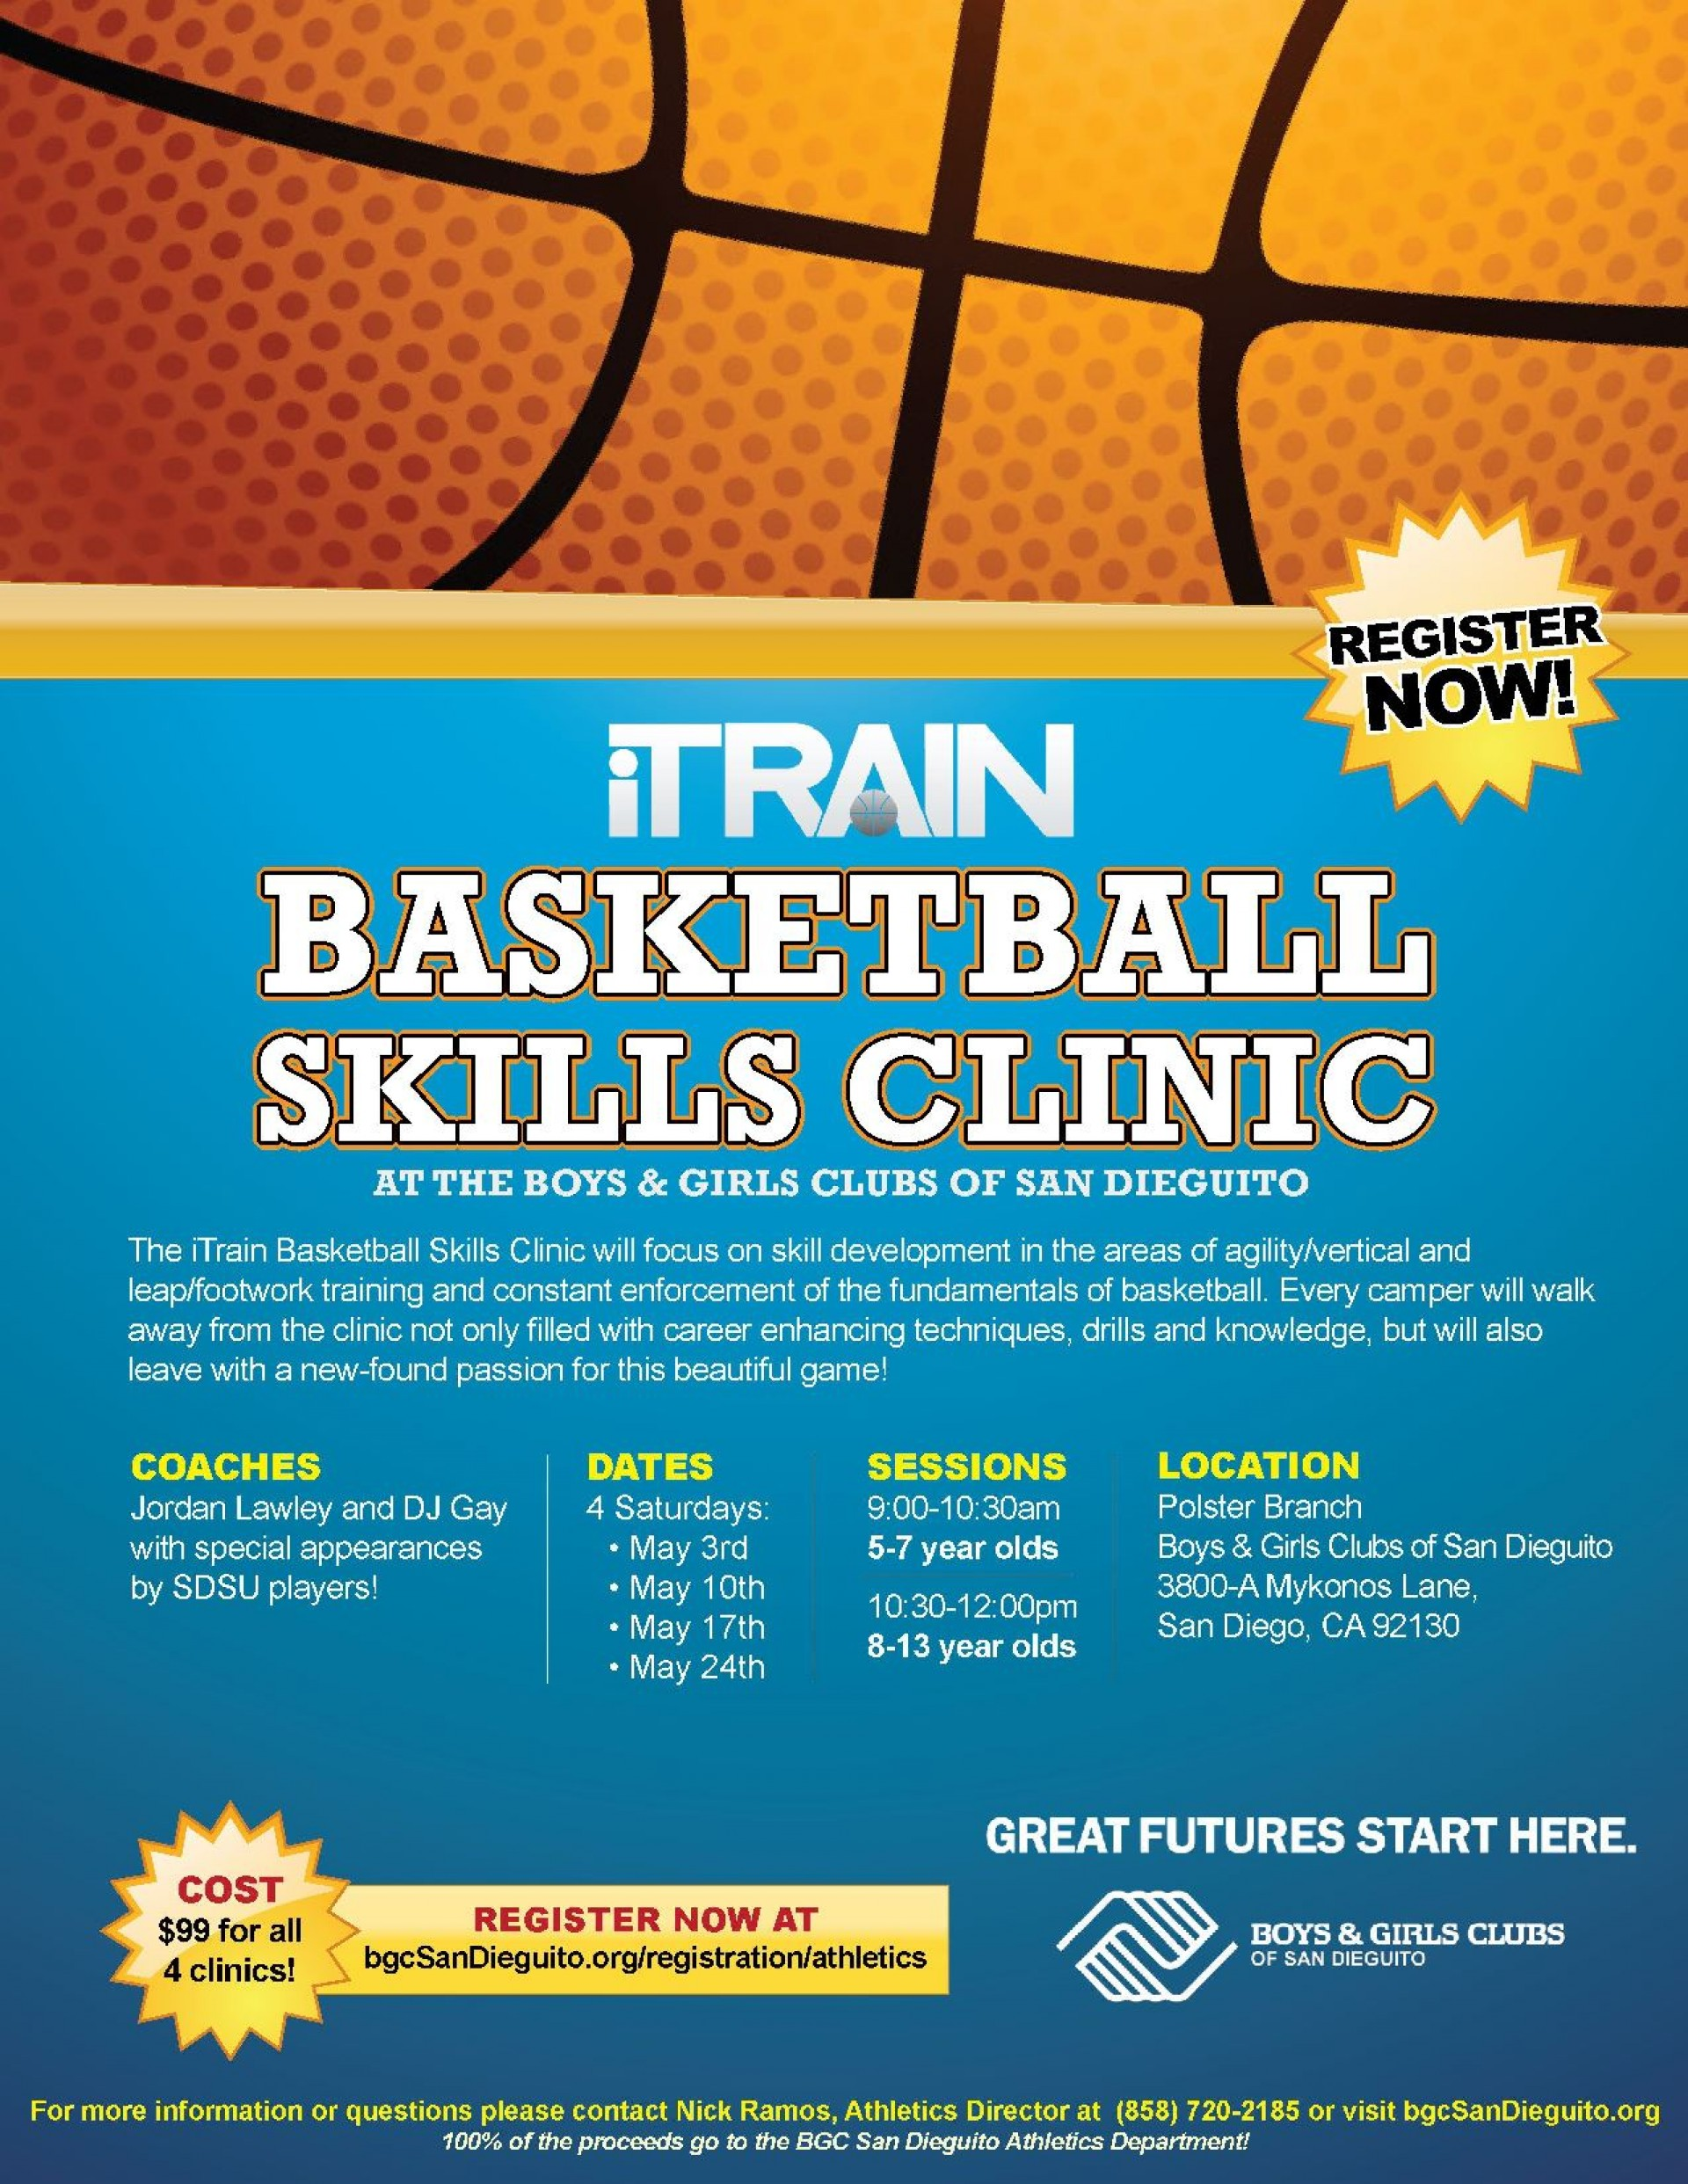 007 Breathtaking Basketball Flyer Template Free Image  Brochure Tryout Camp1920